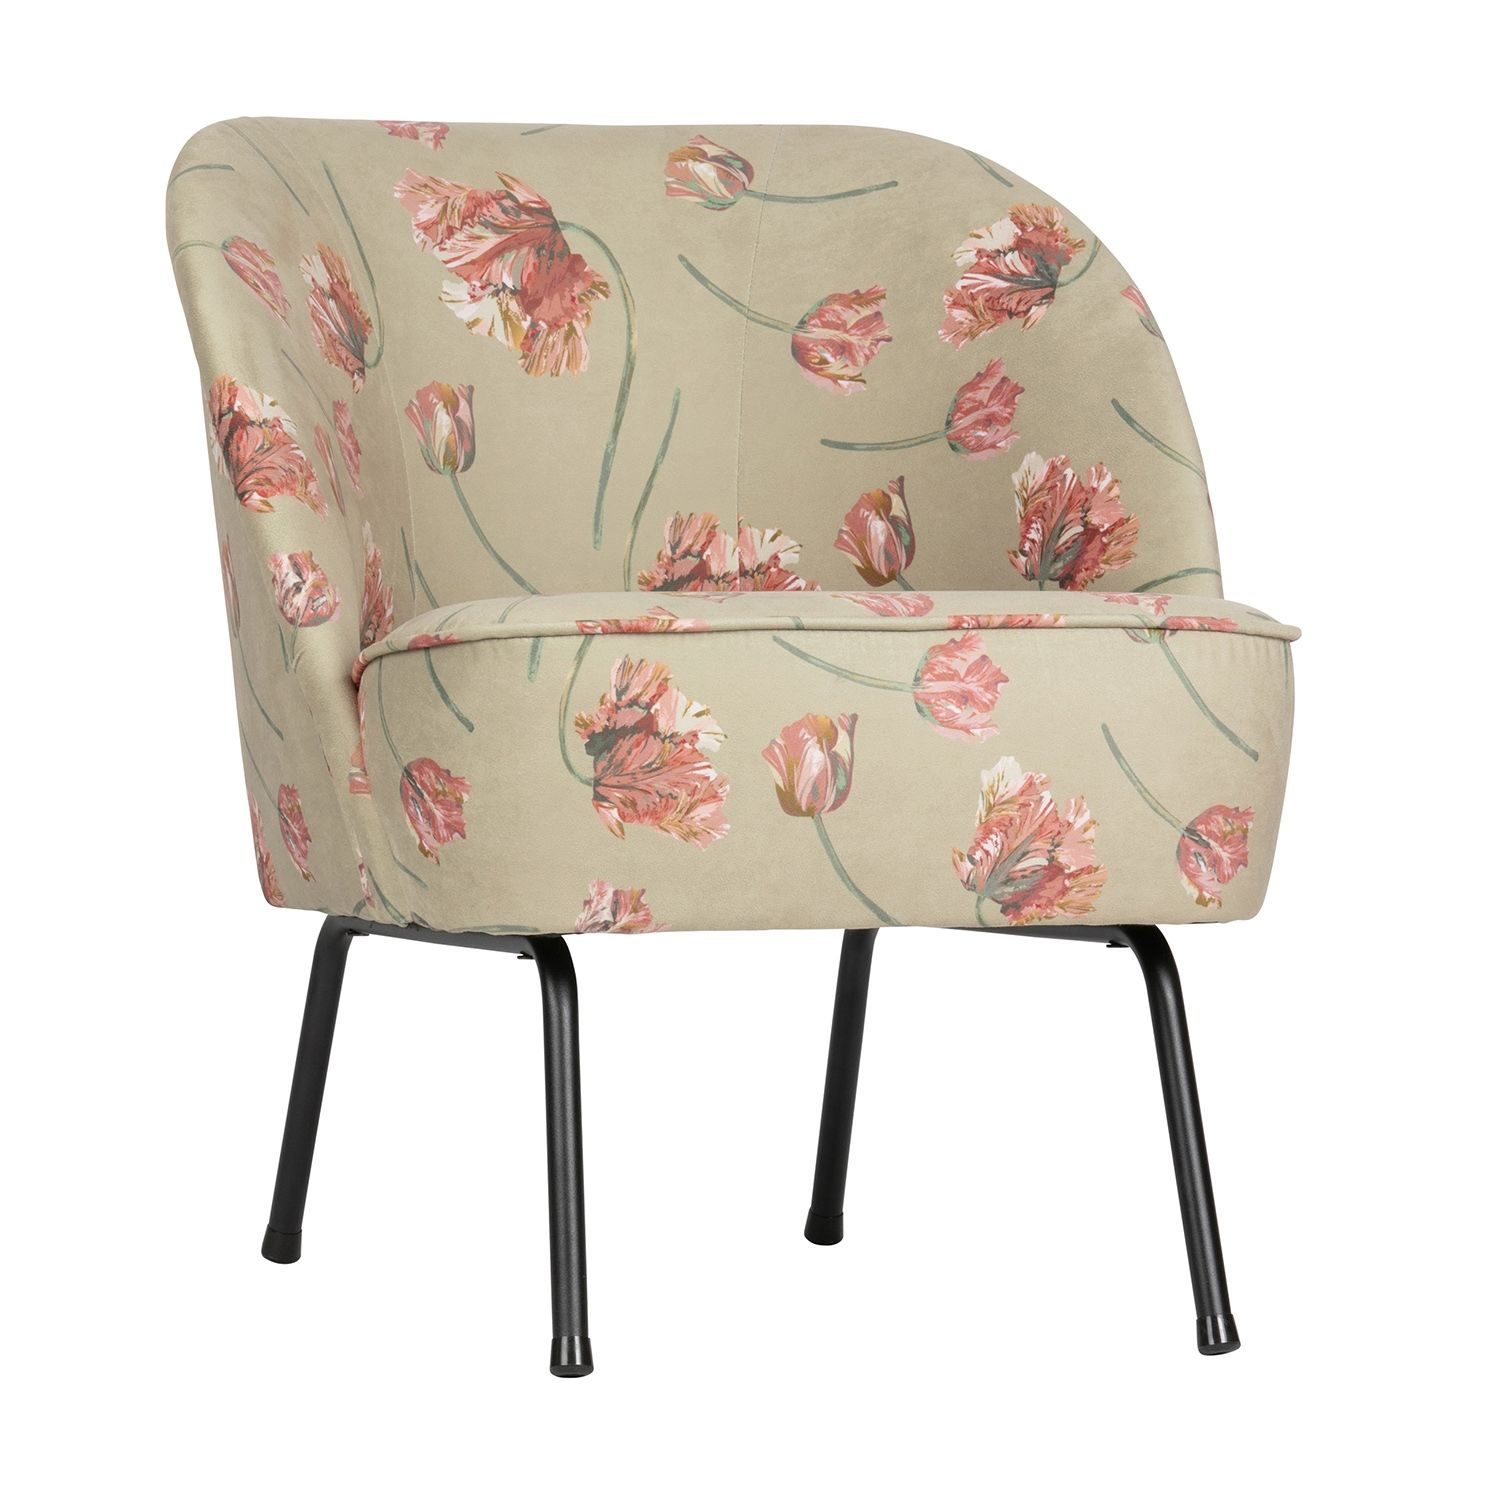 Vogue fauteuil BePureHome rococo agave